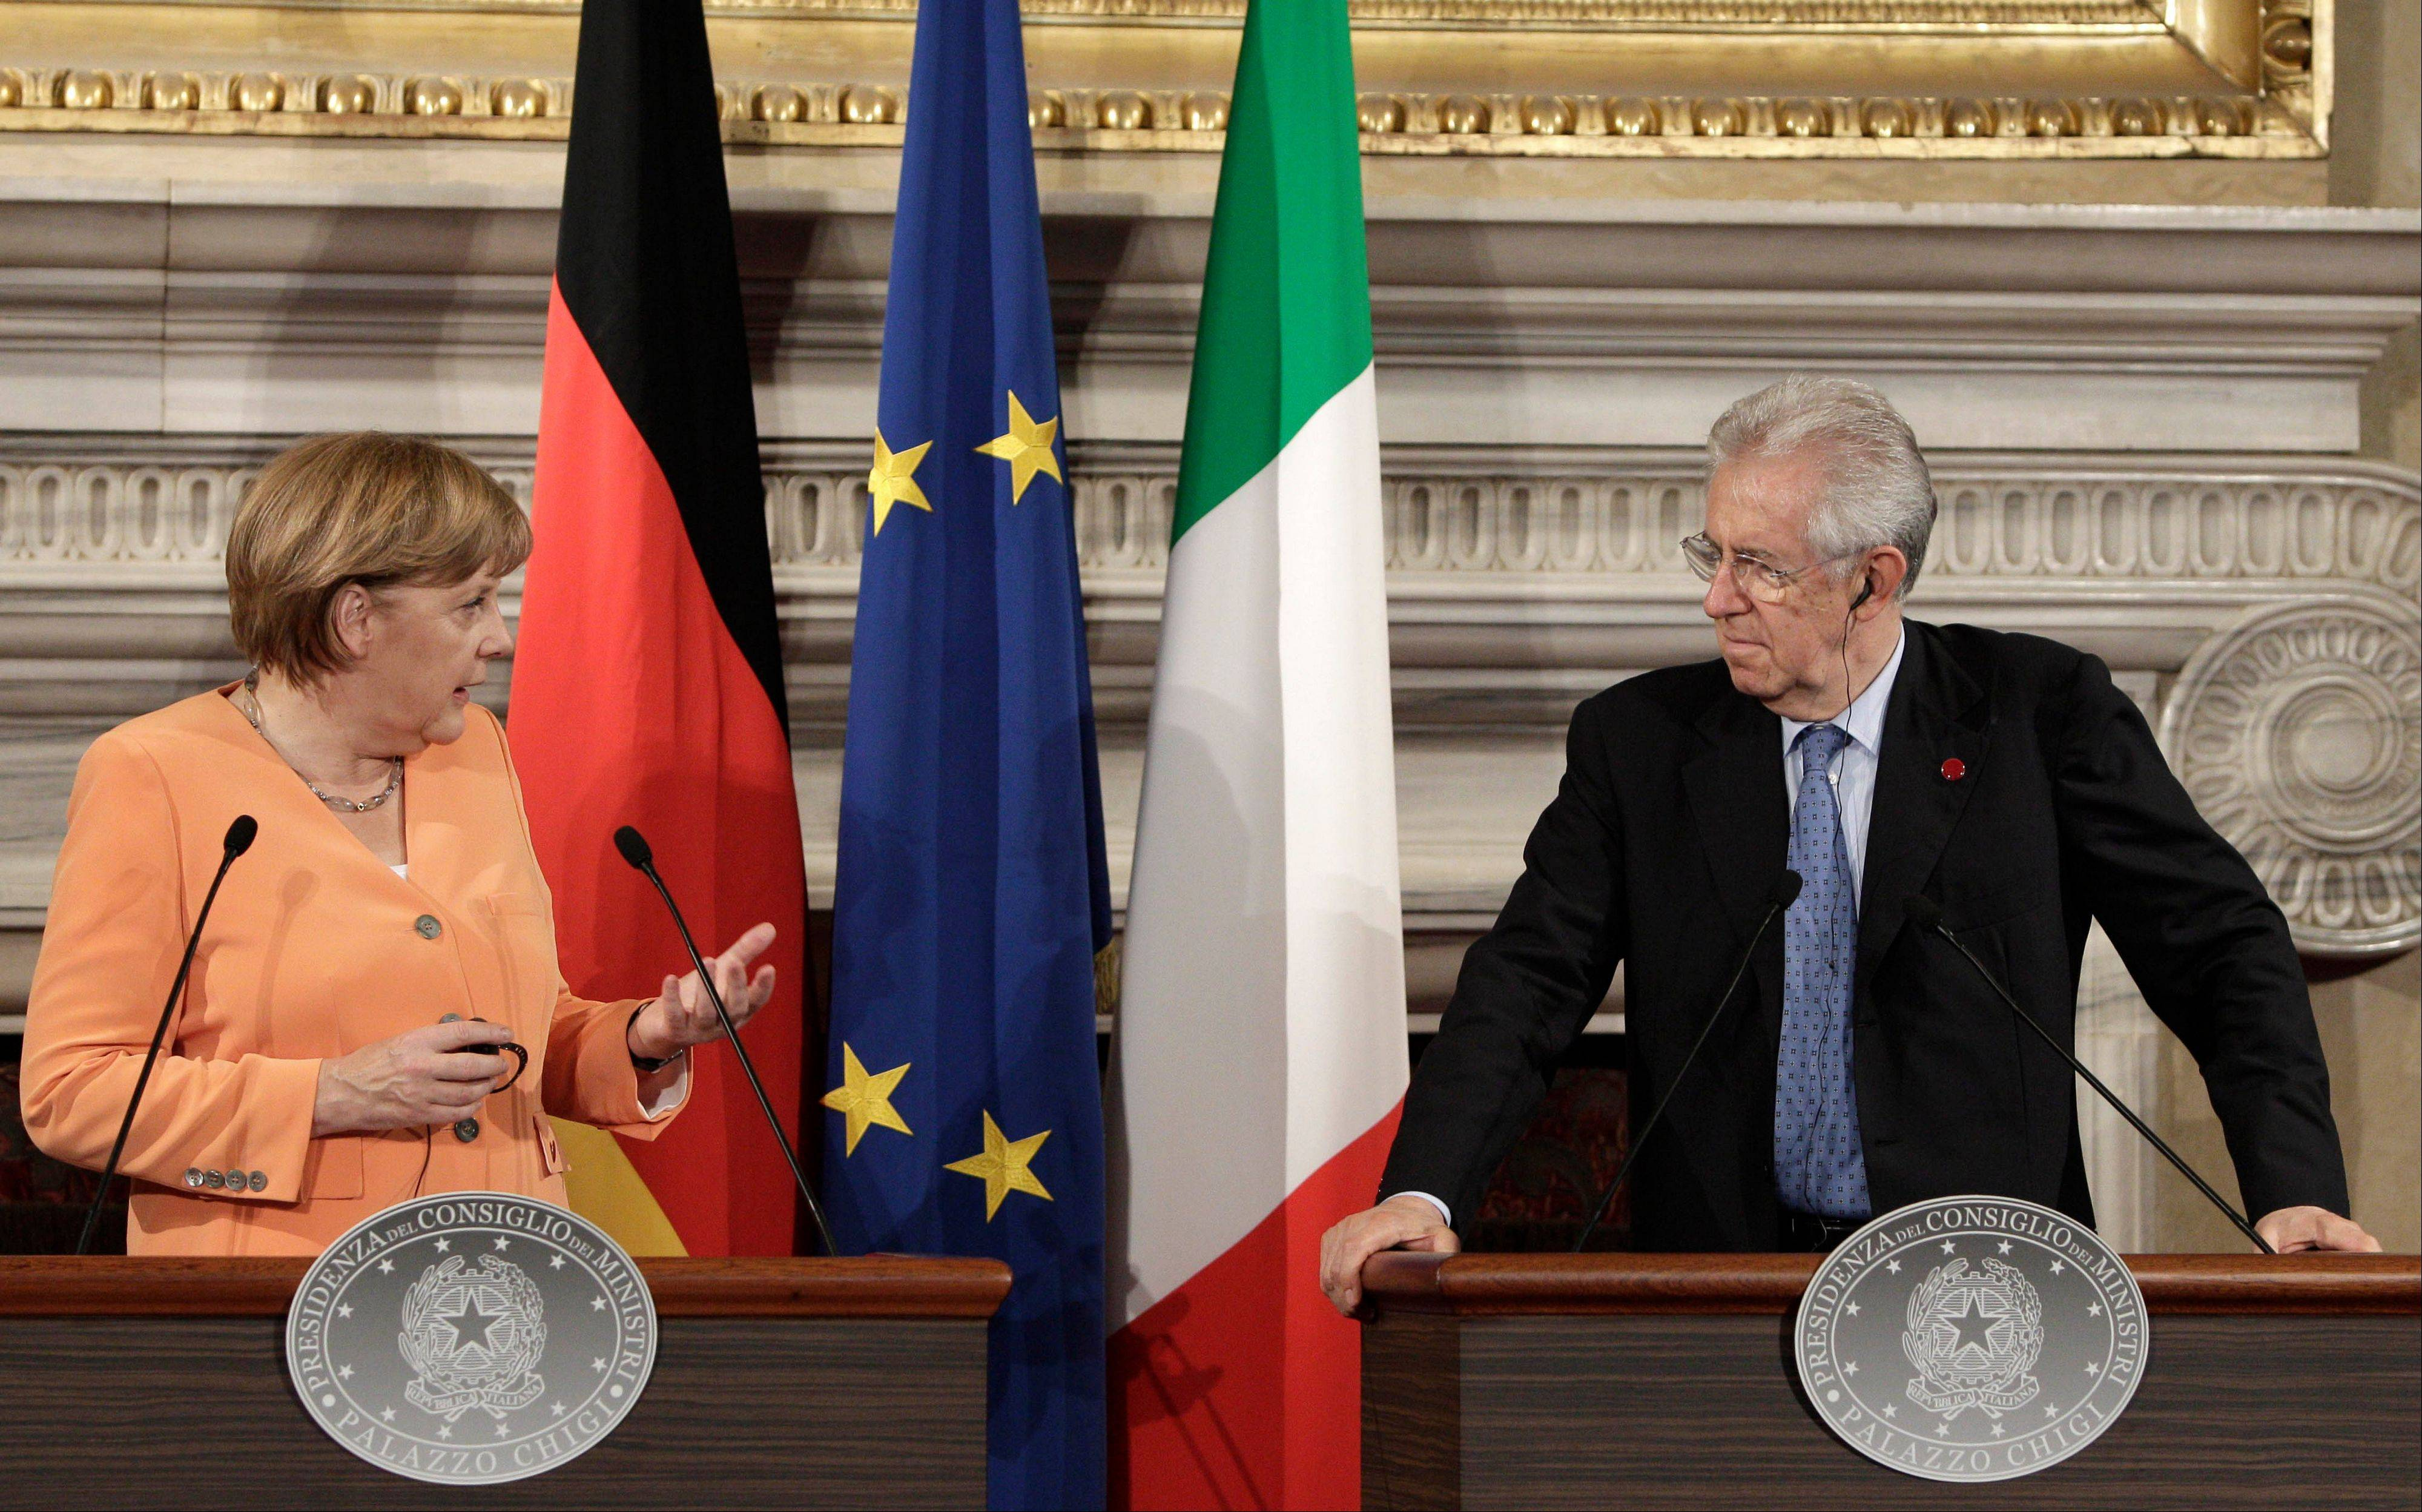 German Chancellor Angela Merkel, left, and Italian Premier Mario Monti speak at a press conference during a bilateral meeting at Villa Madama in Rome, Wednesday.